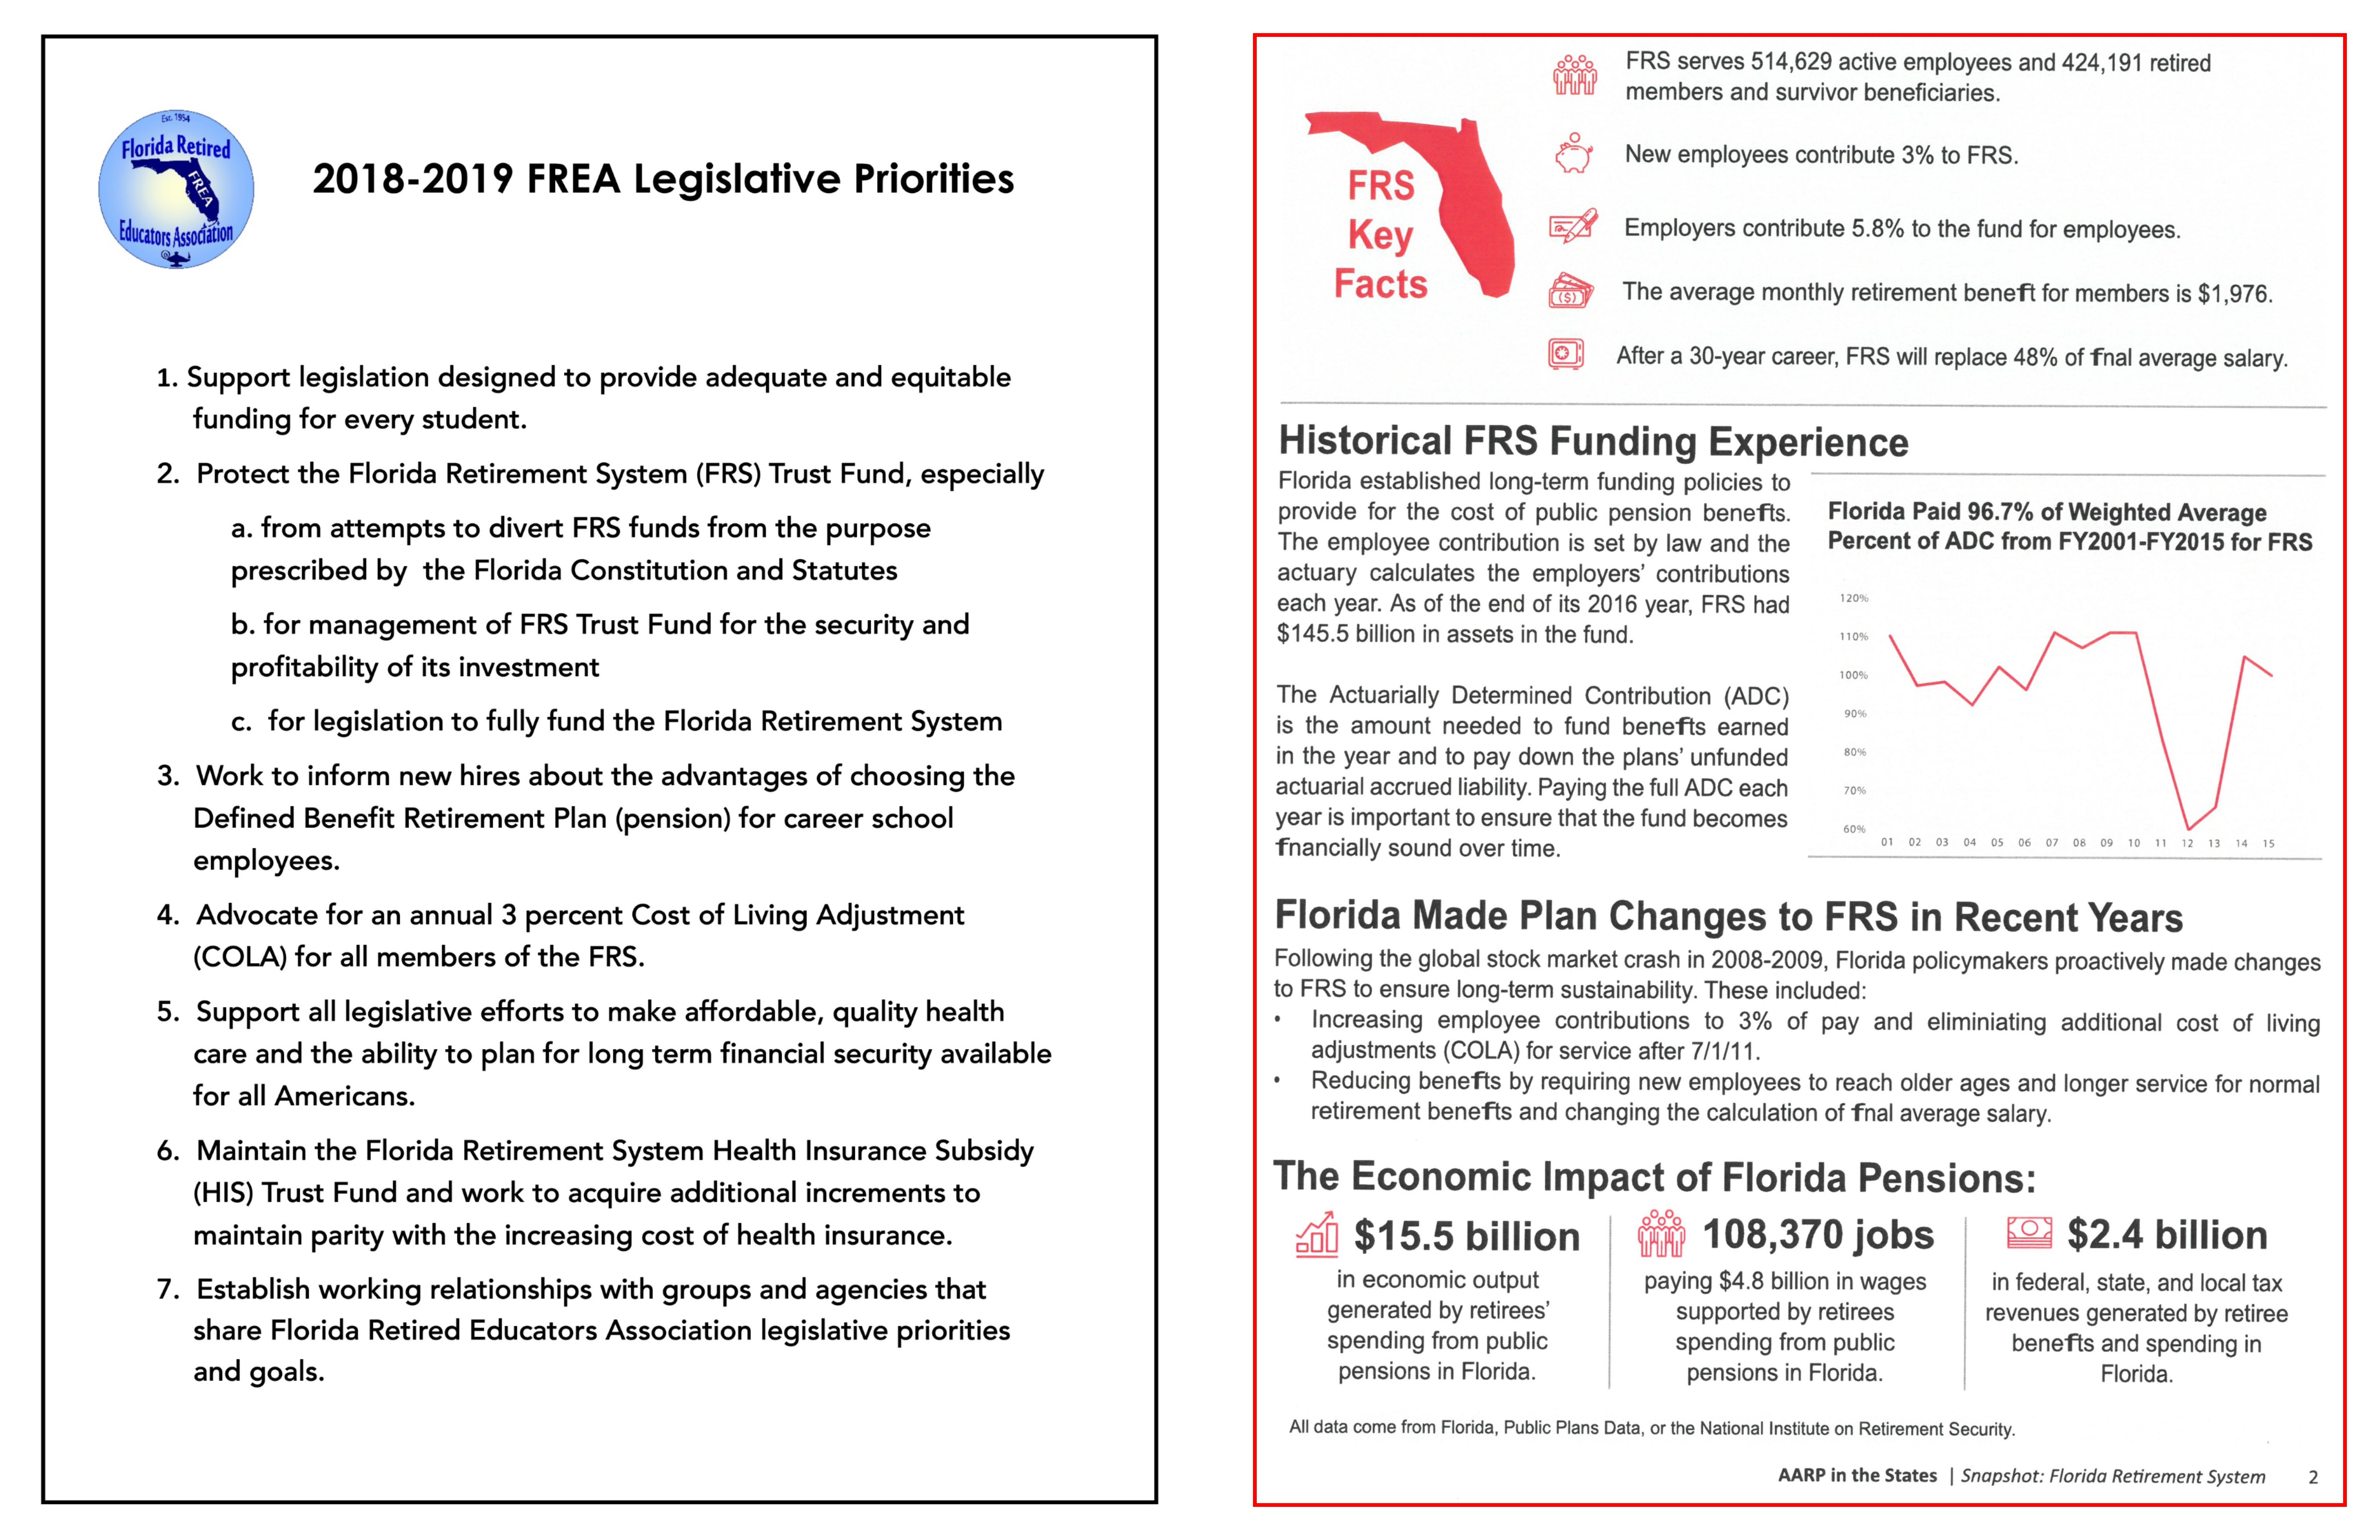 Florida By the Numbers 2018-19 1